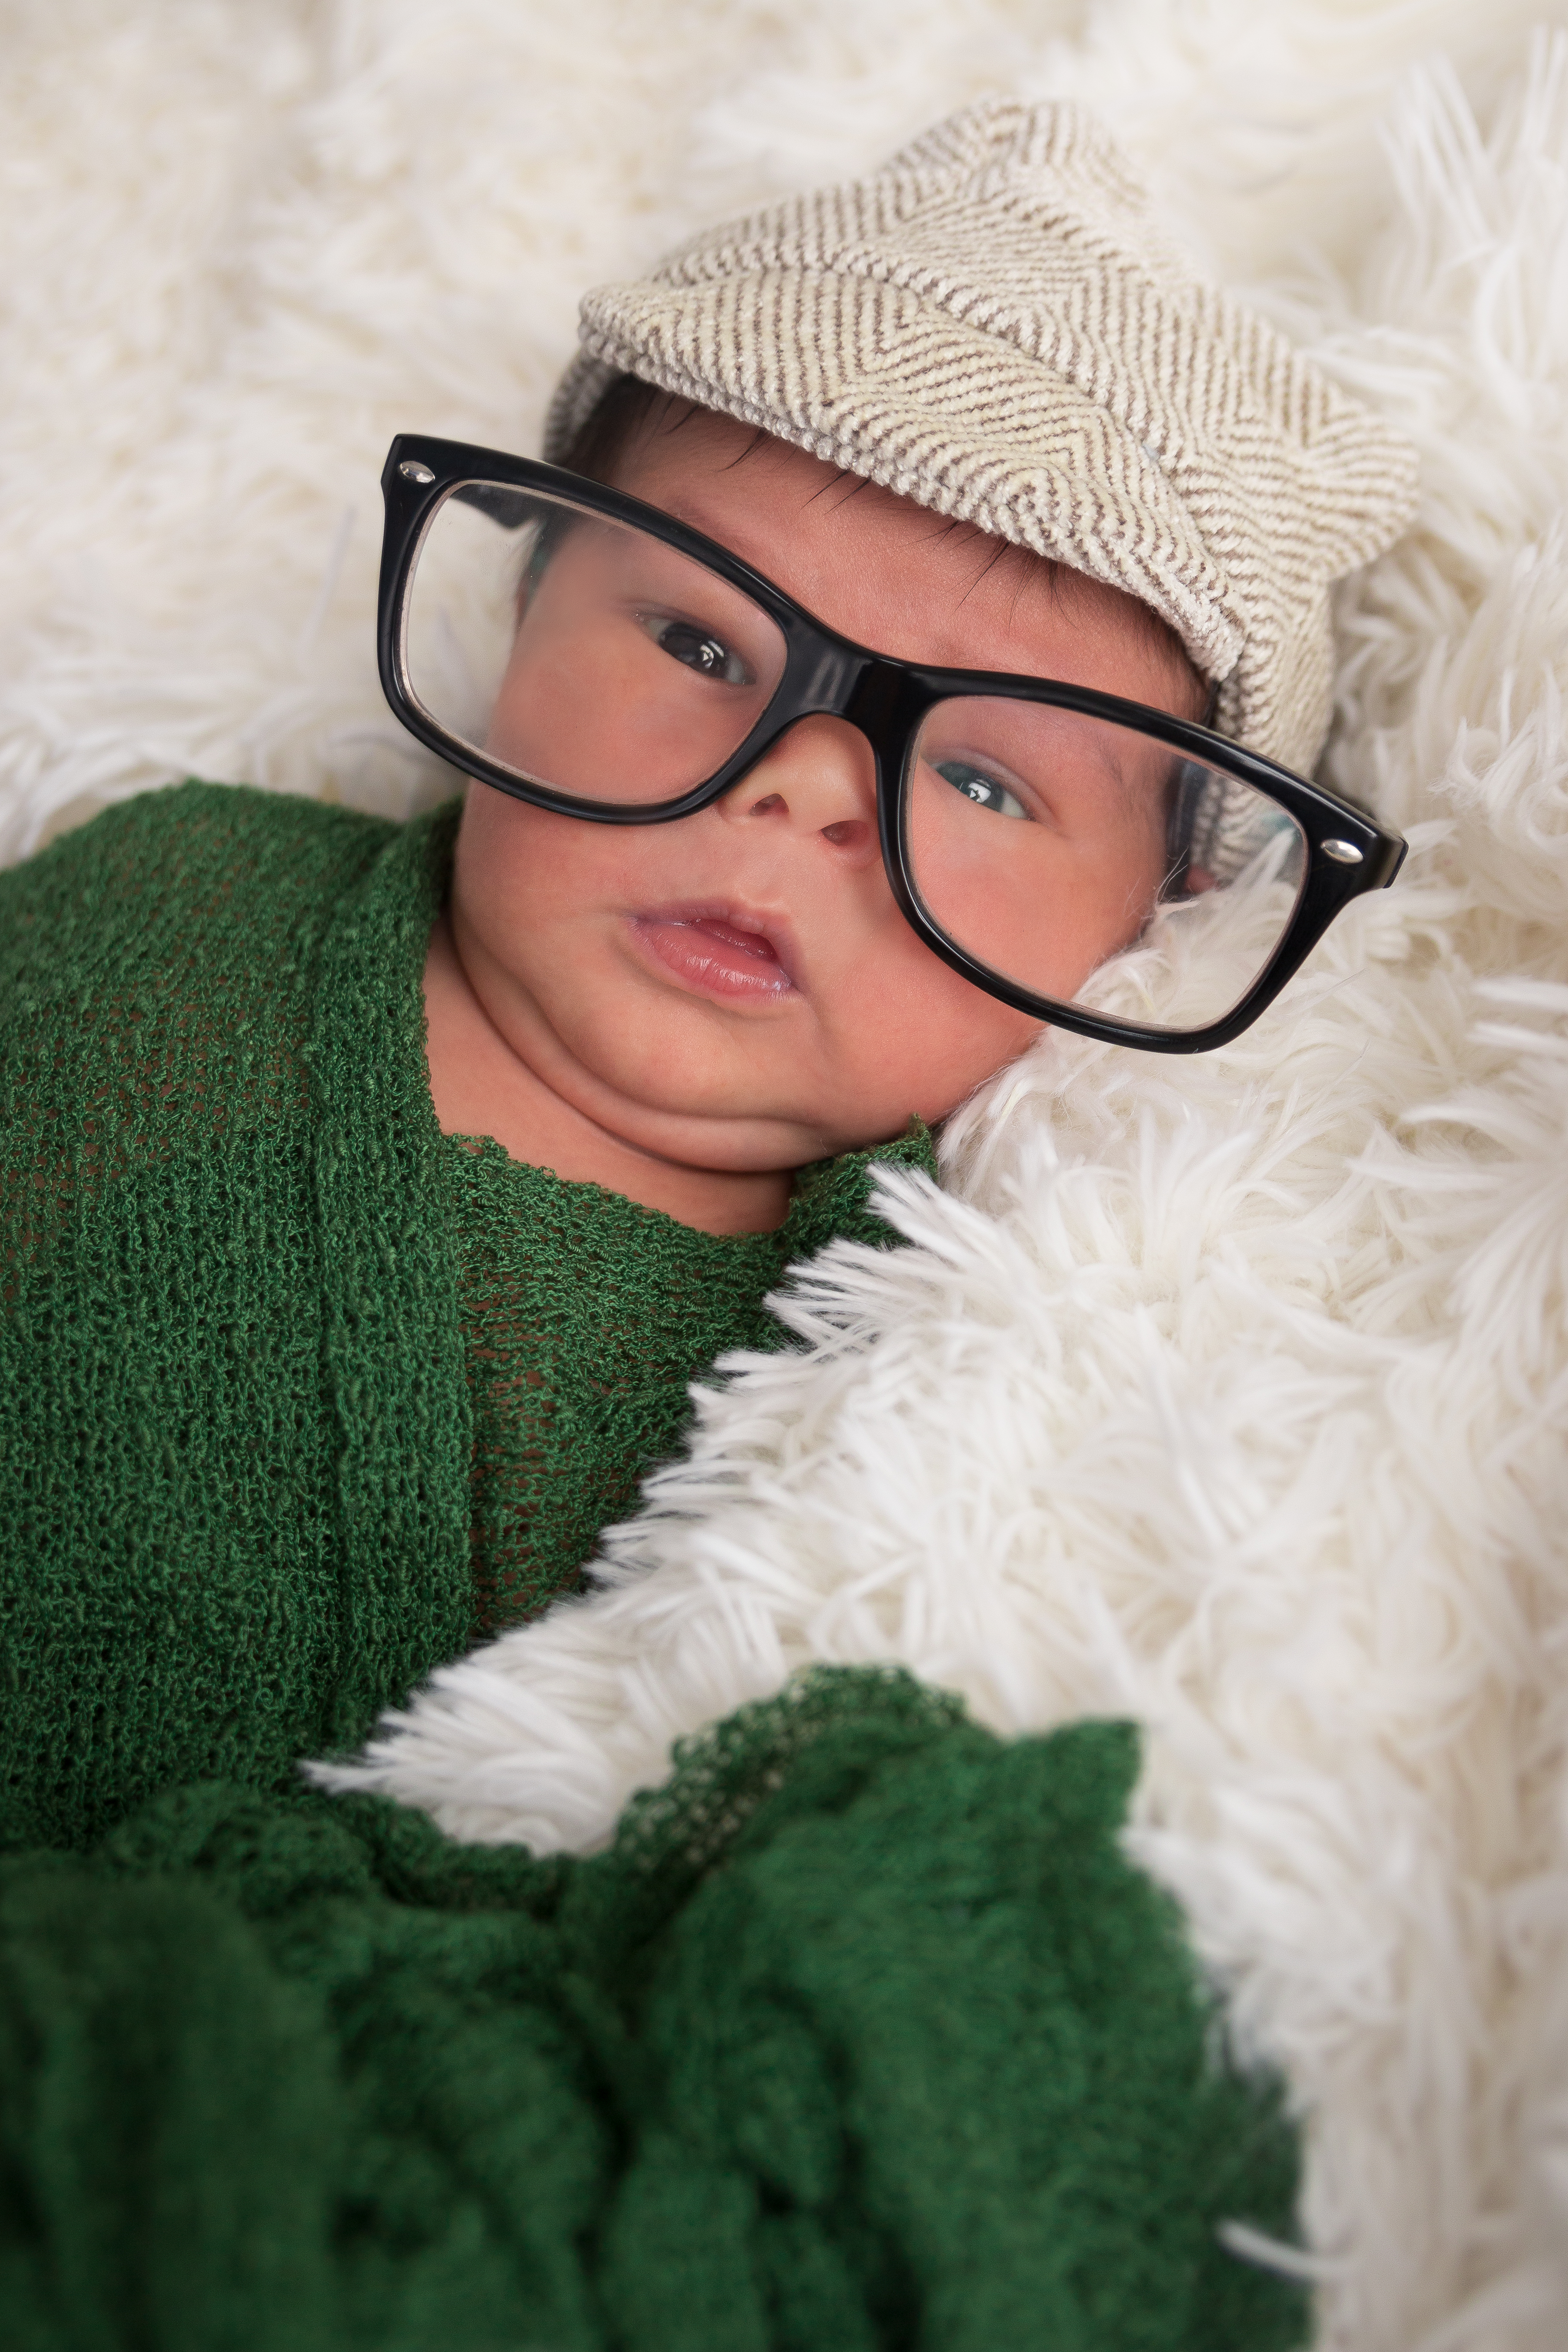 Newborn Photography tallahassee Baby with glasses